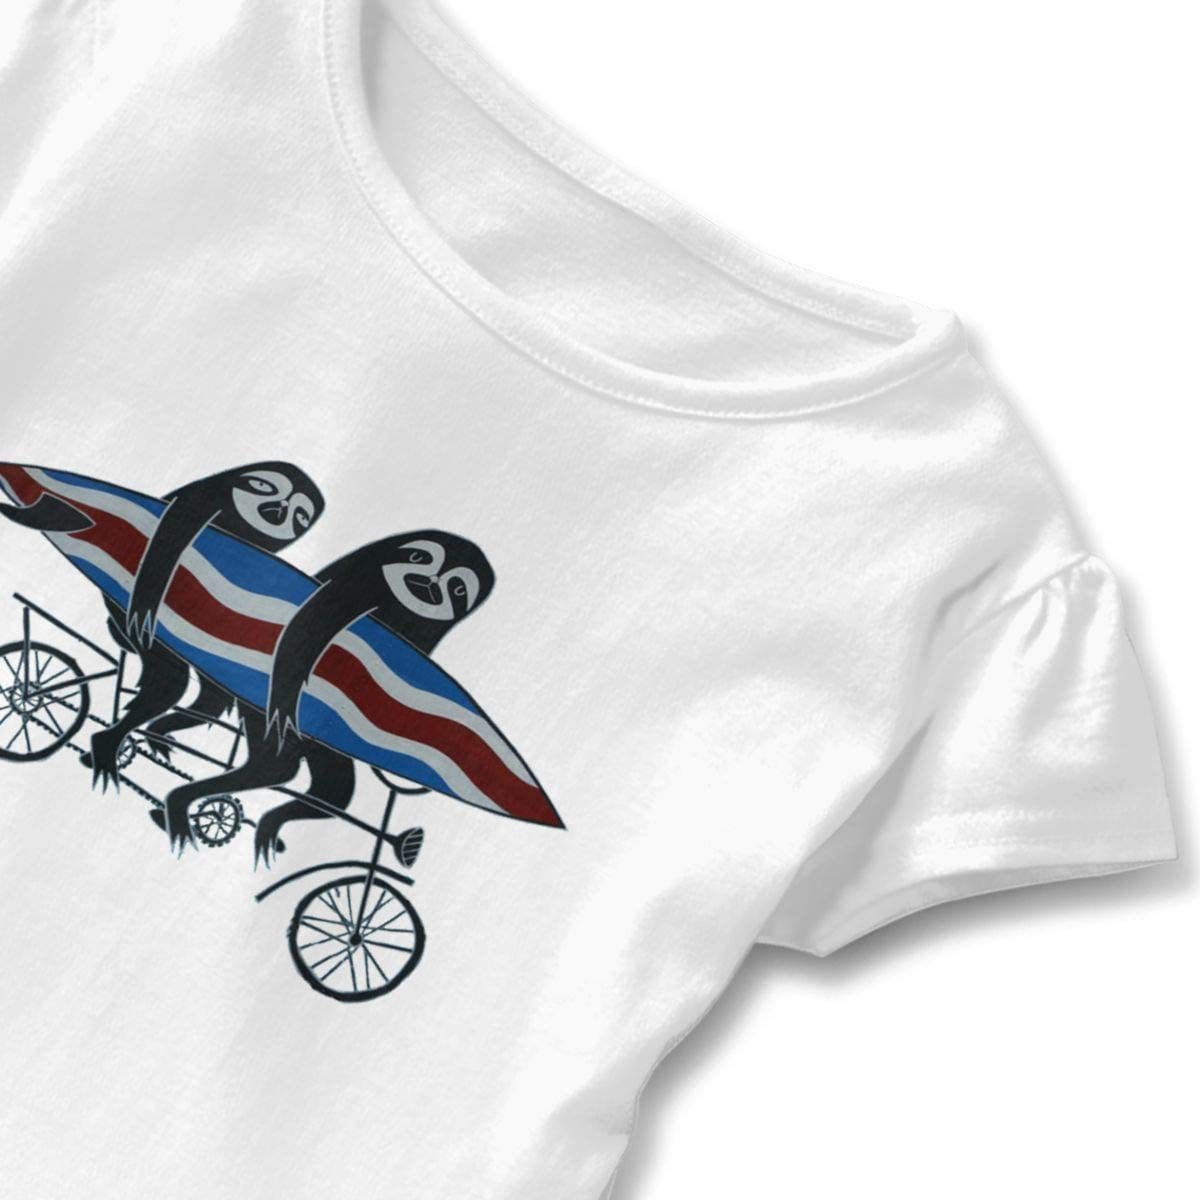 Surfing Tandem Sloths Bicycle Shirt Baby Girls Ruffles Casual Tees for 2-6 Years Old Baby